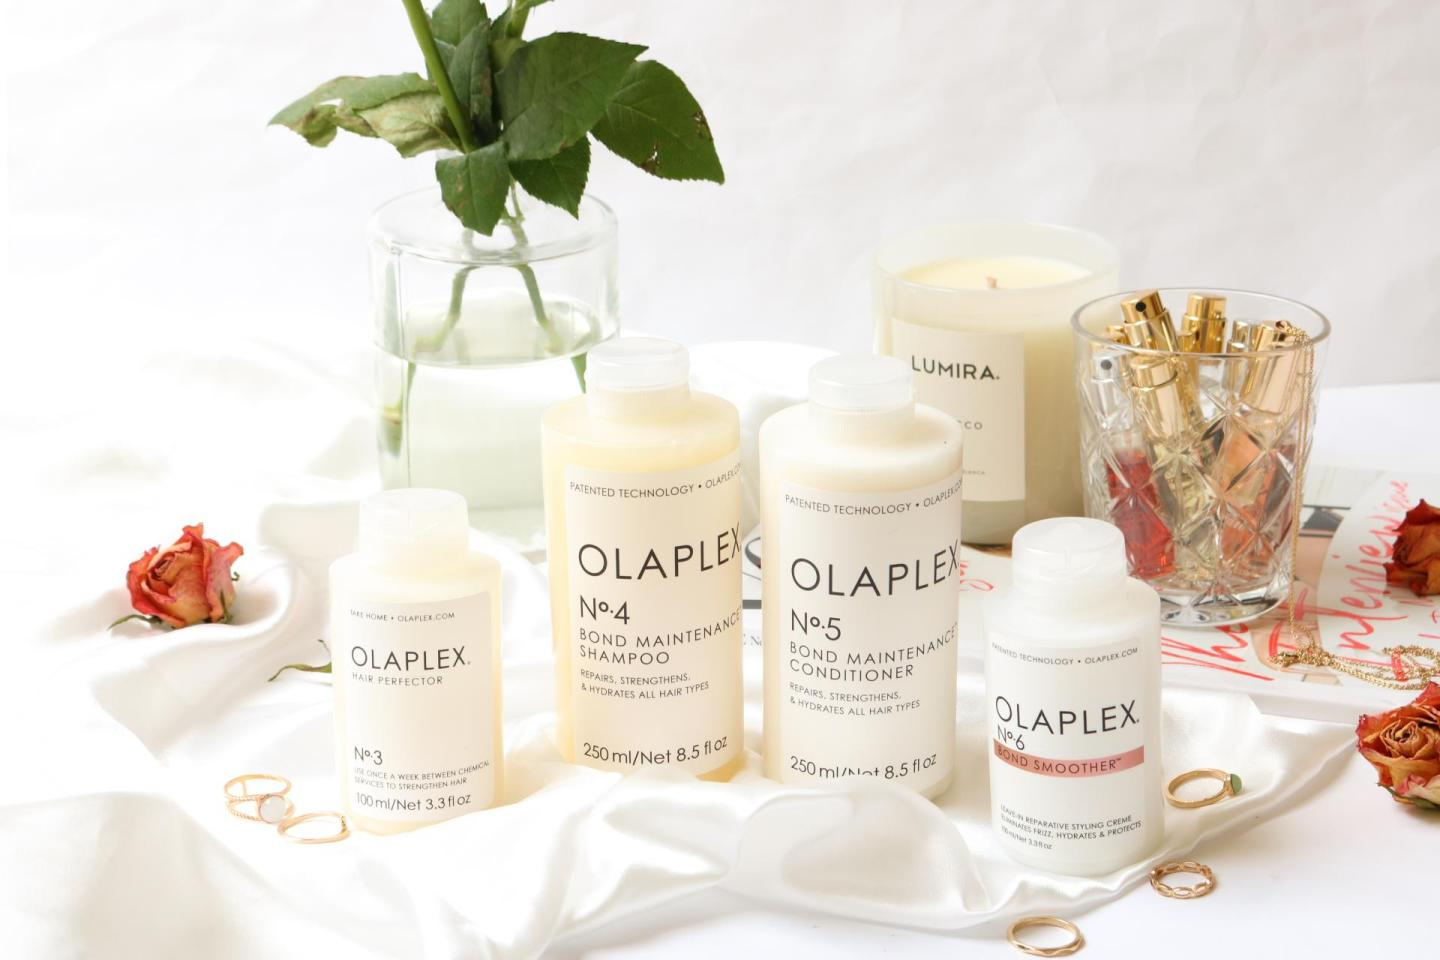 All the Olaplex products together